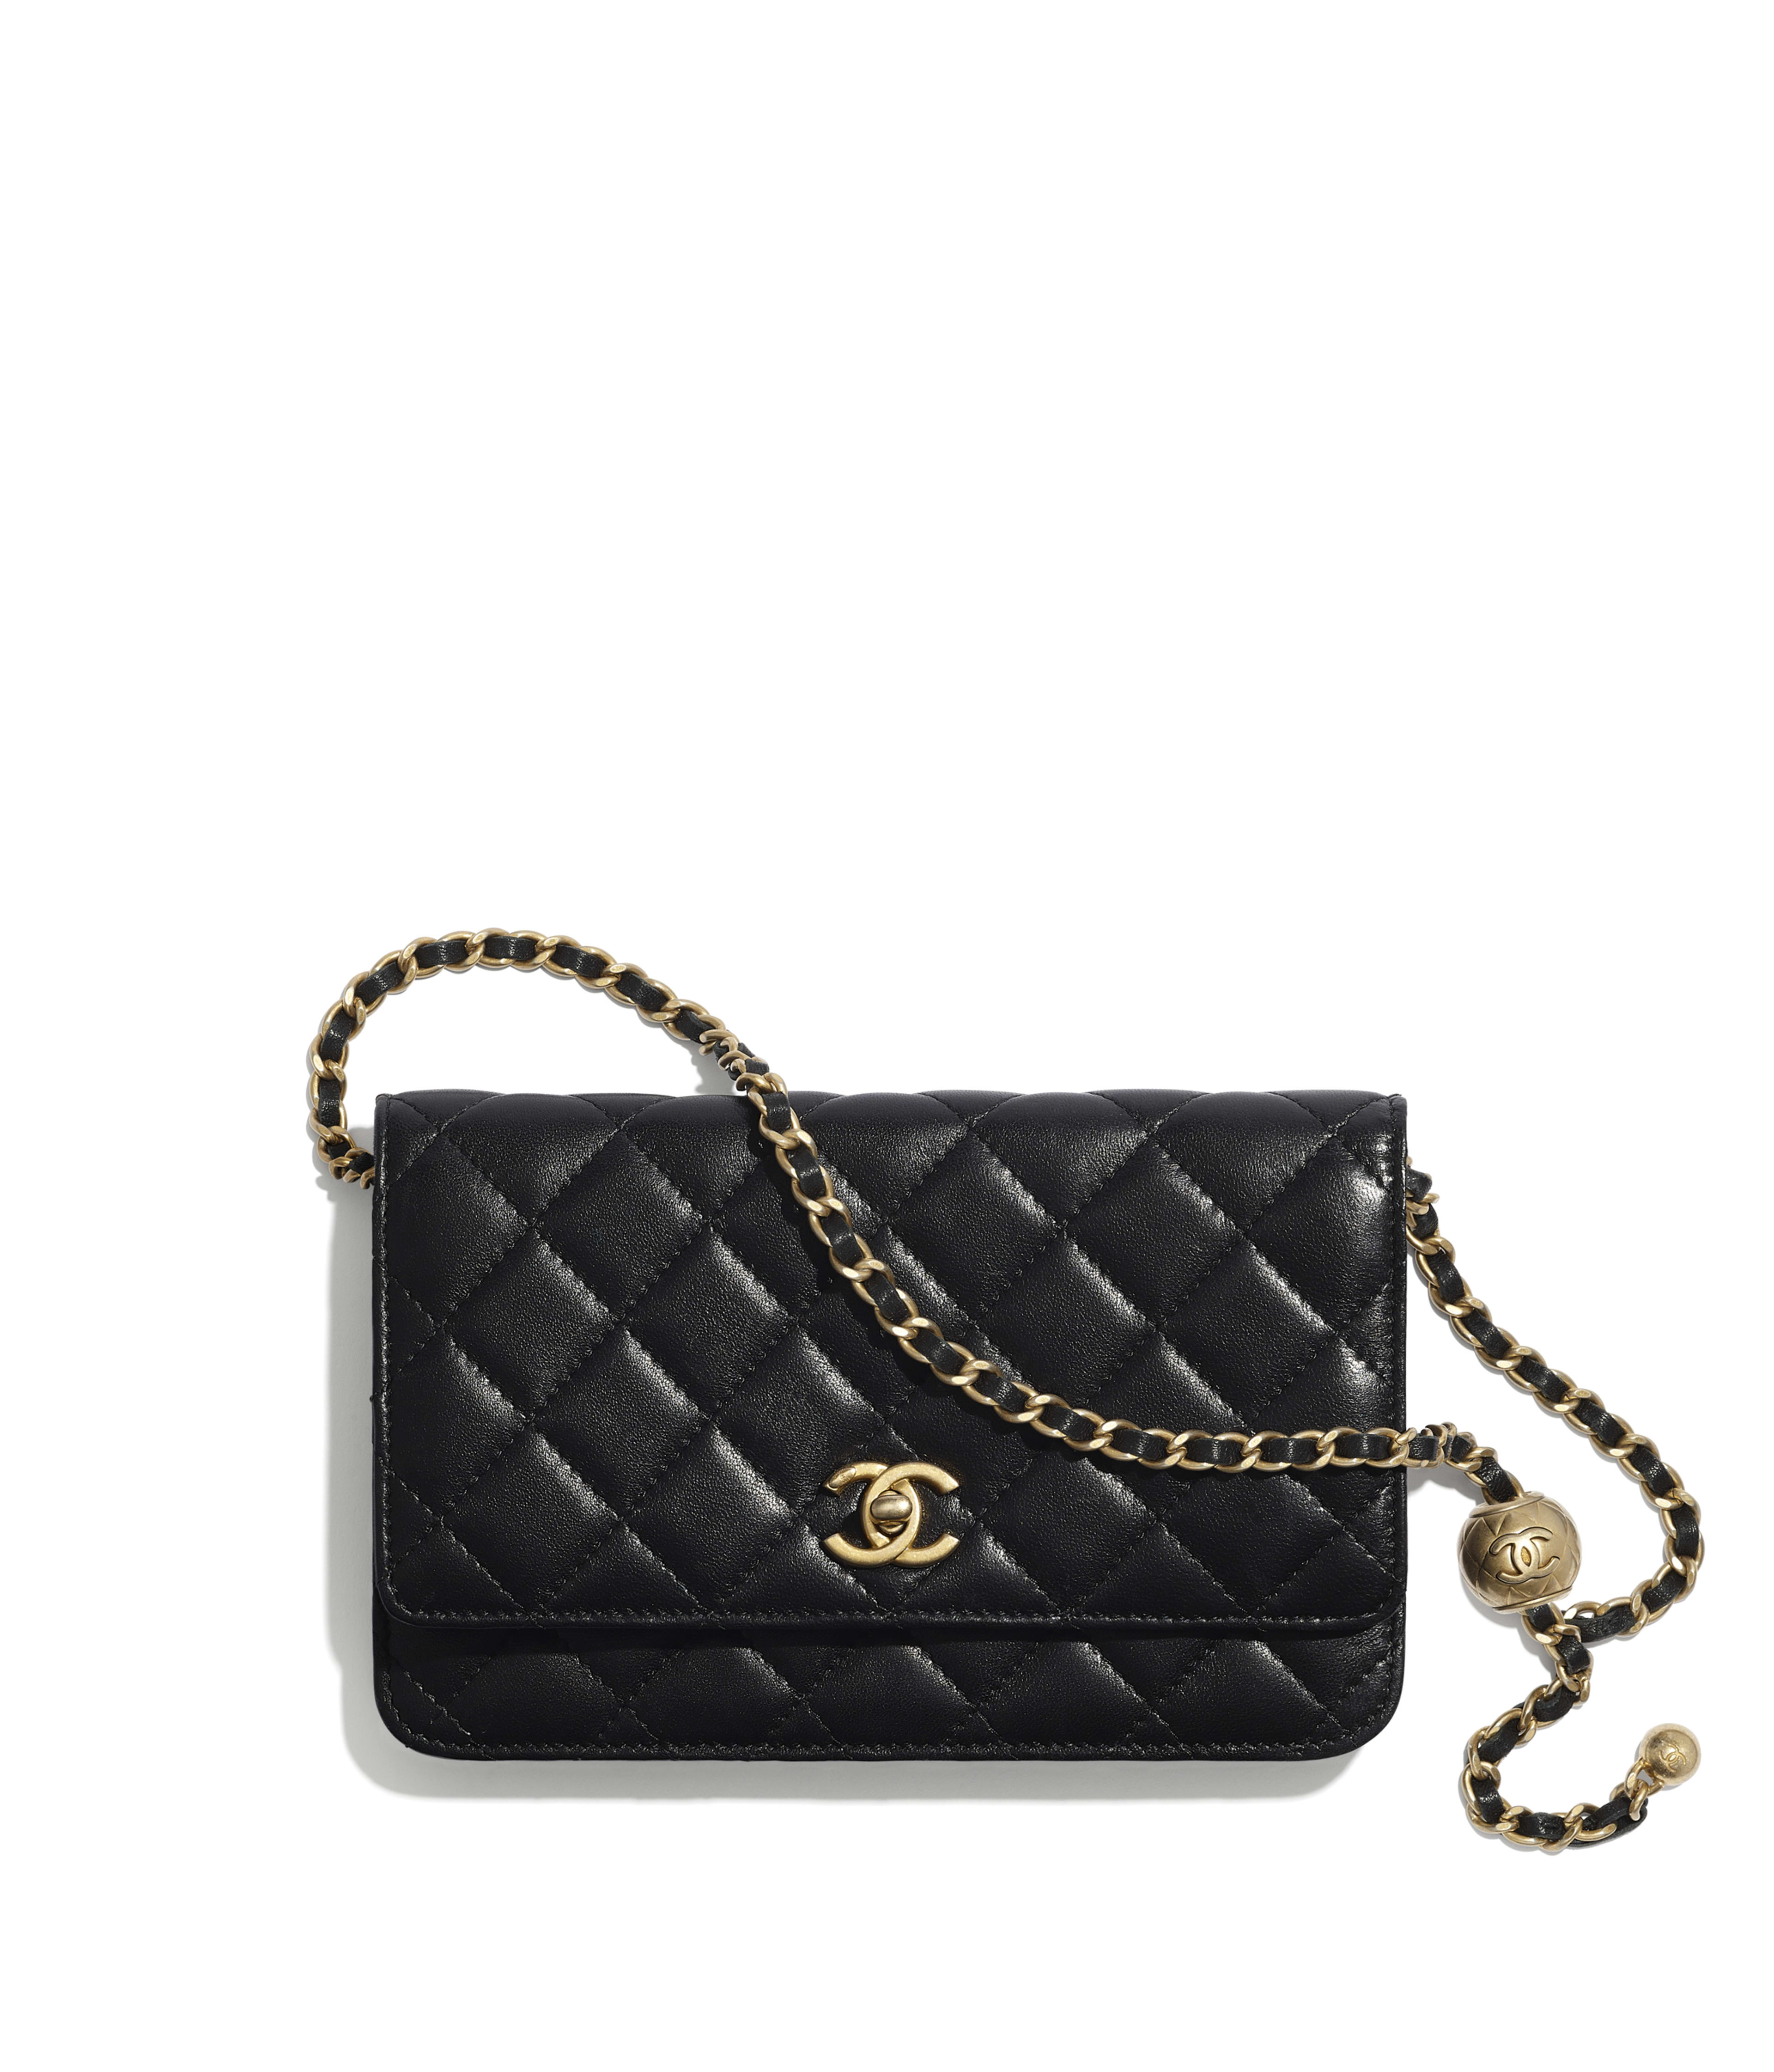 Small Leather Goods Fashion Chanel